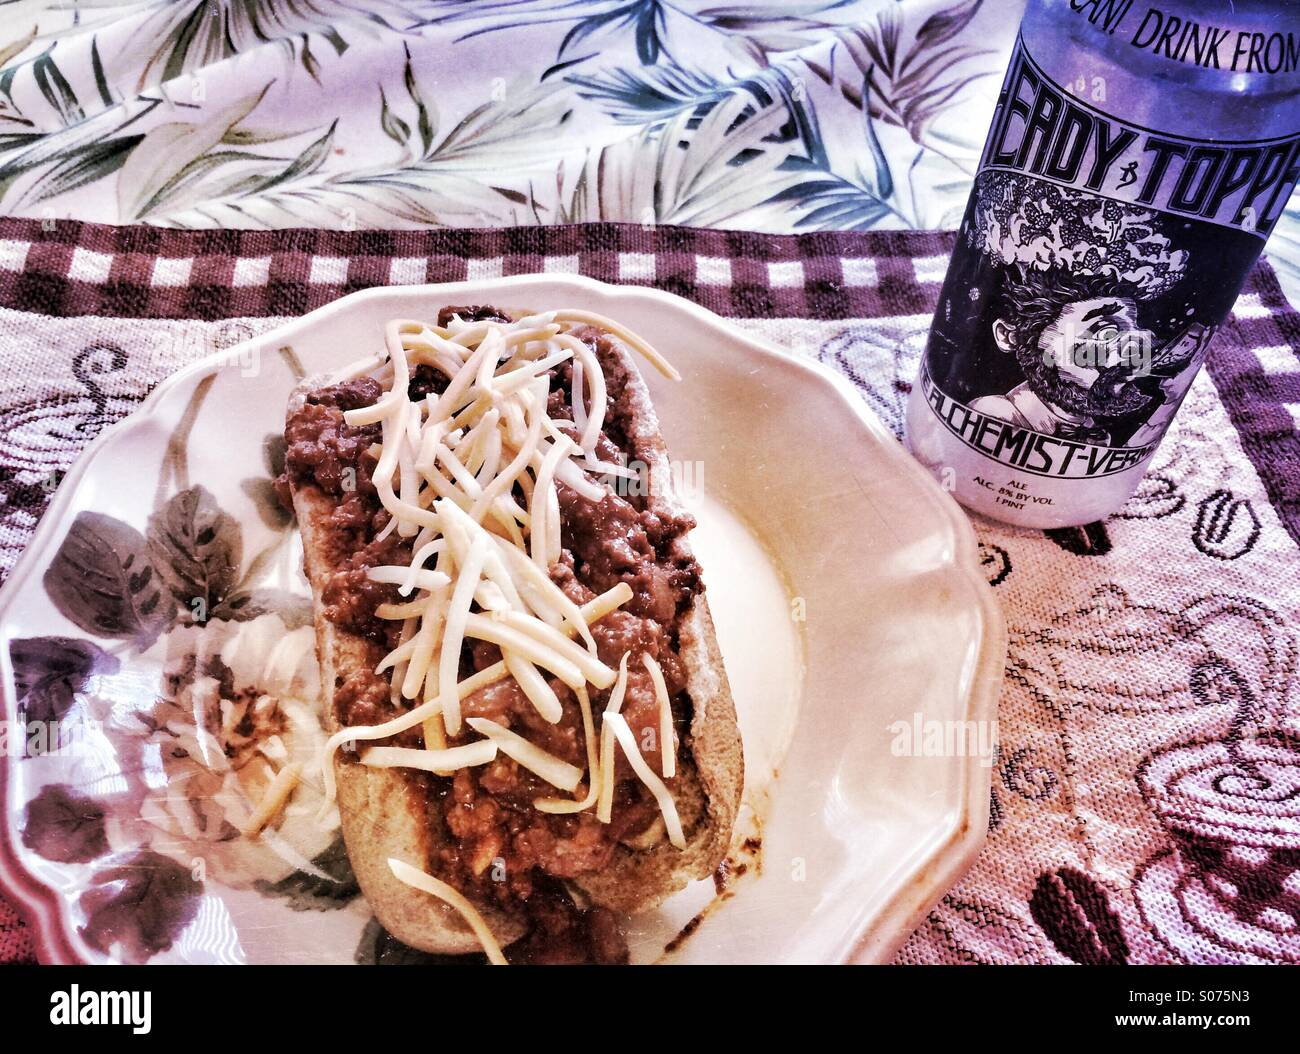 A Chili Dog and a can of Heady Topper - Stock Image